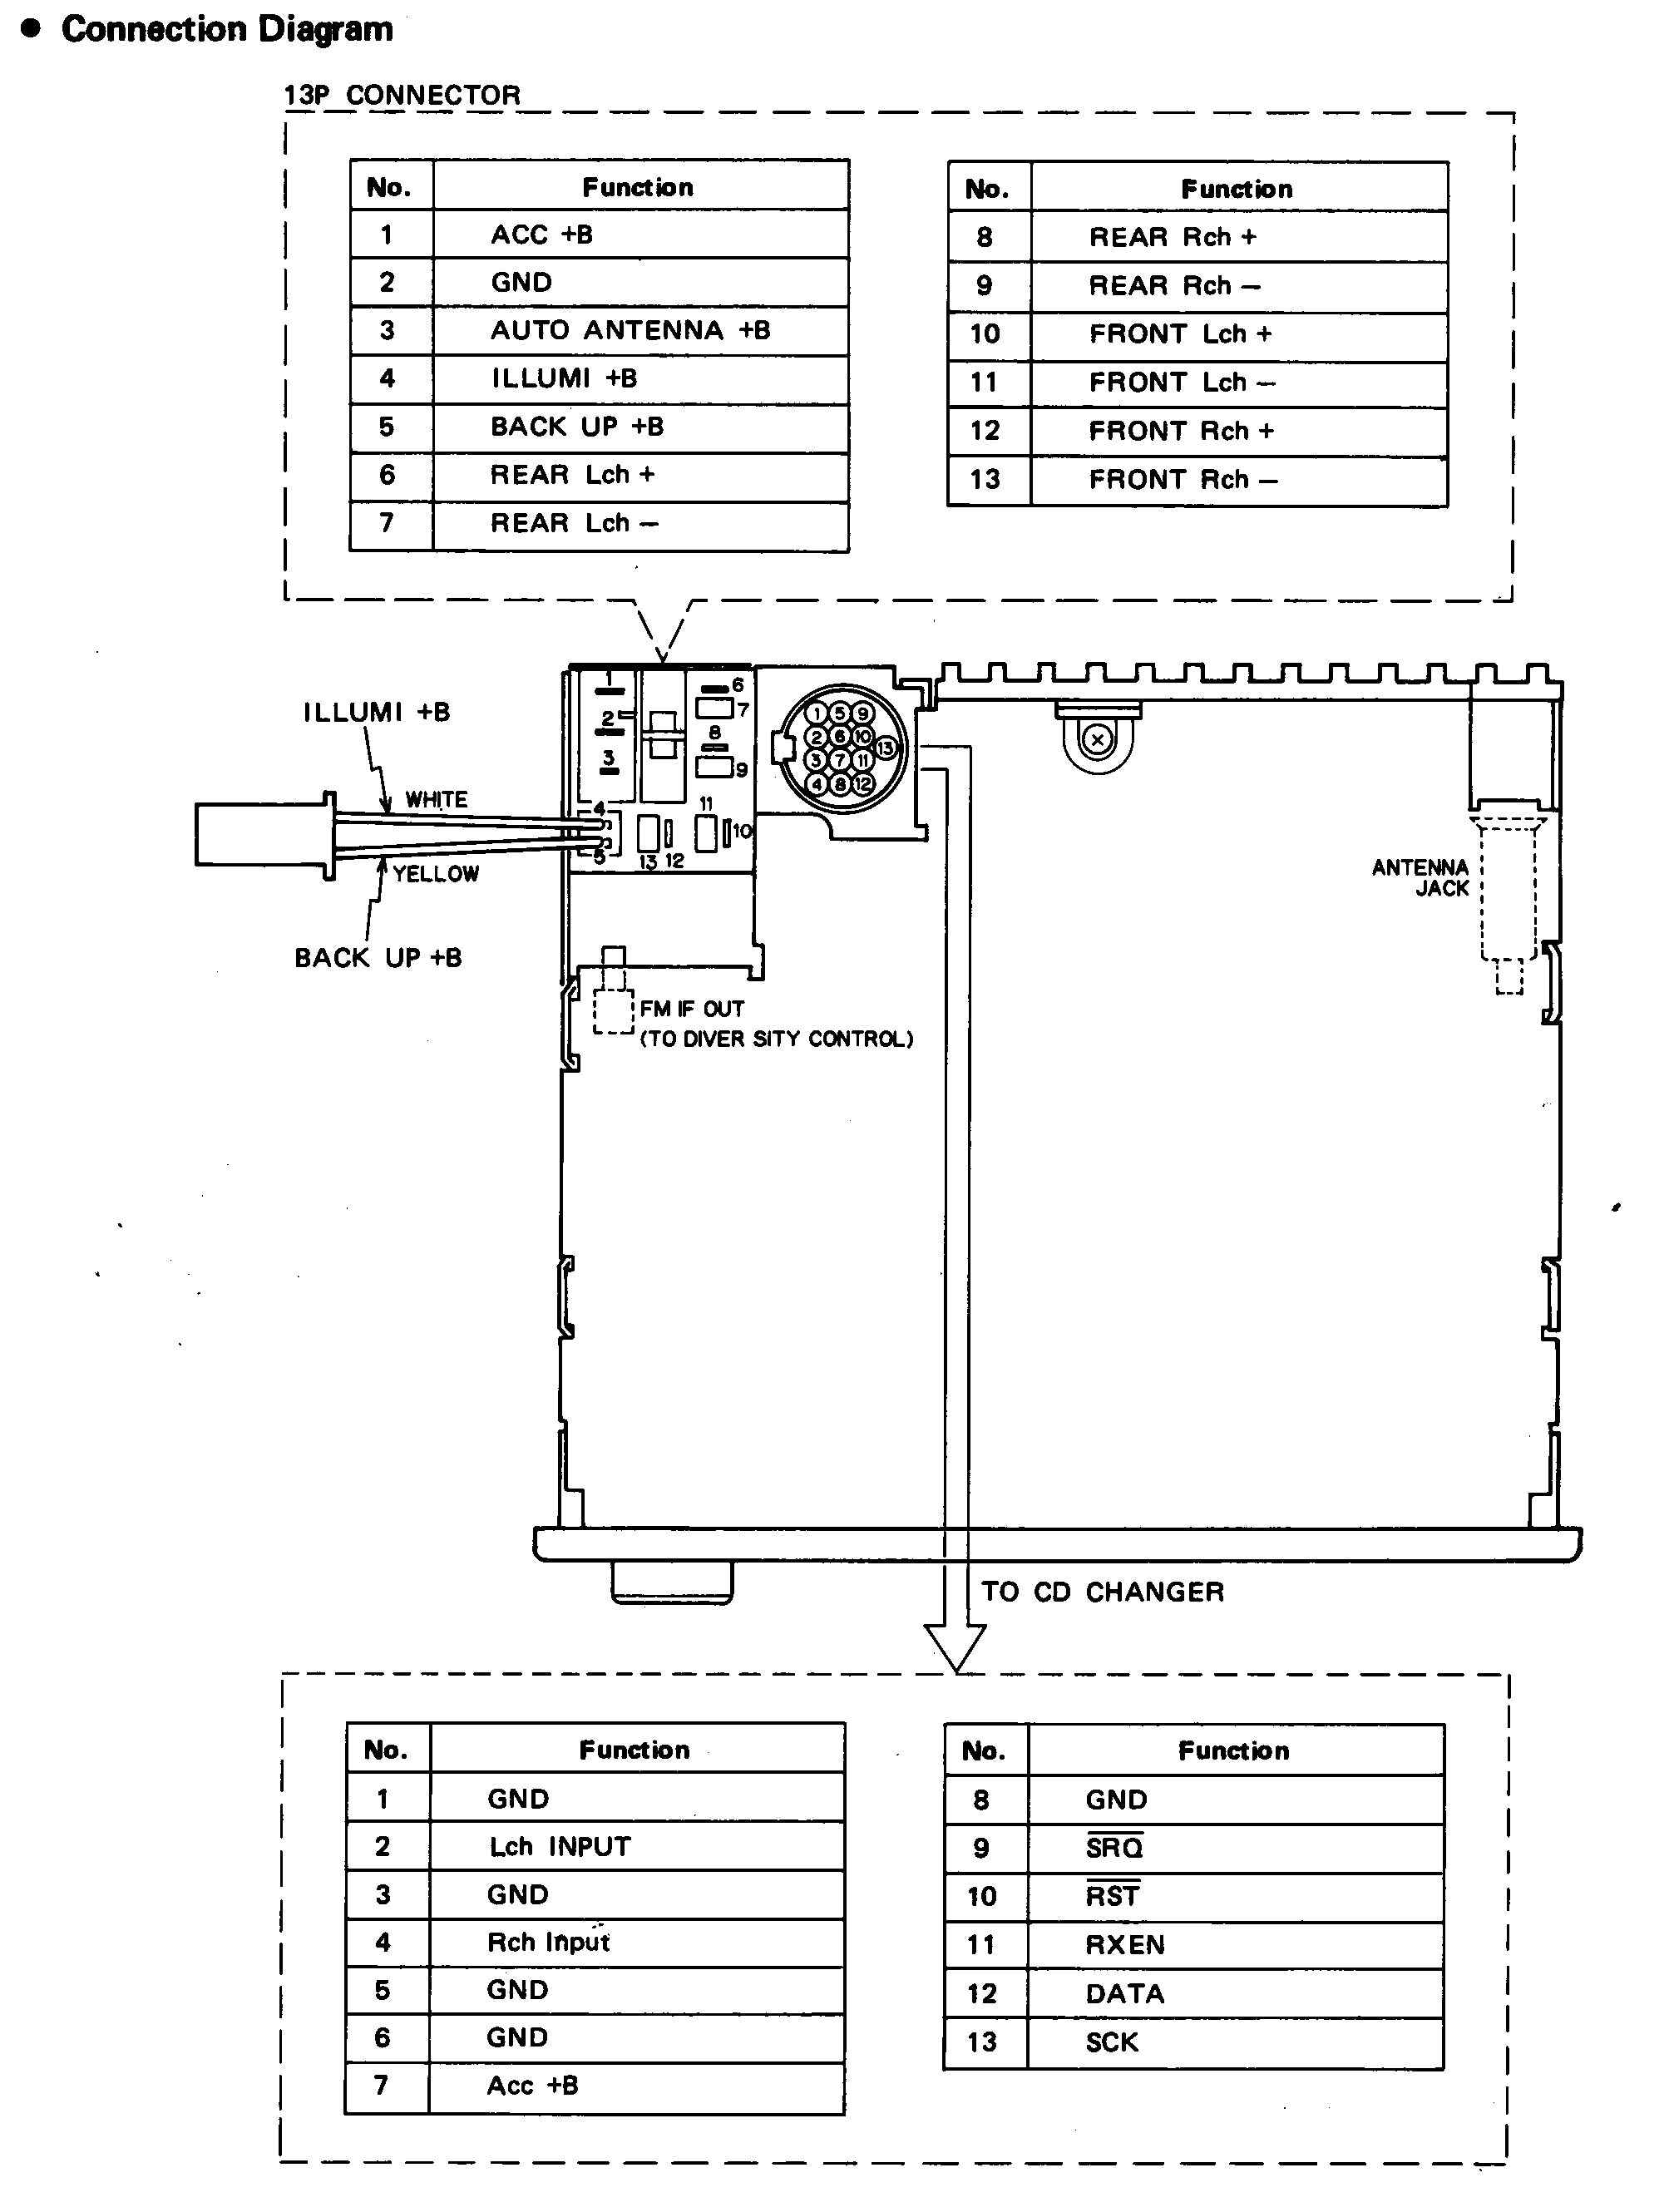 Bose Audio Diagram Detailed Schematics 2003 Infiniti G35 Radio Wiring Car Stereo Diagrams Wire Sound